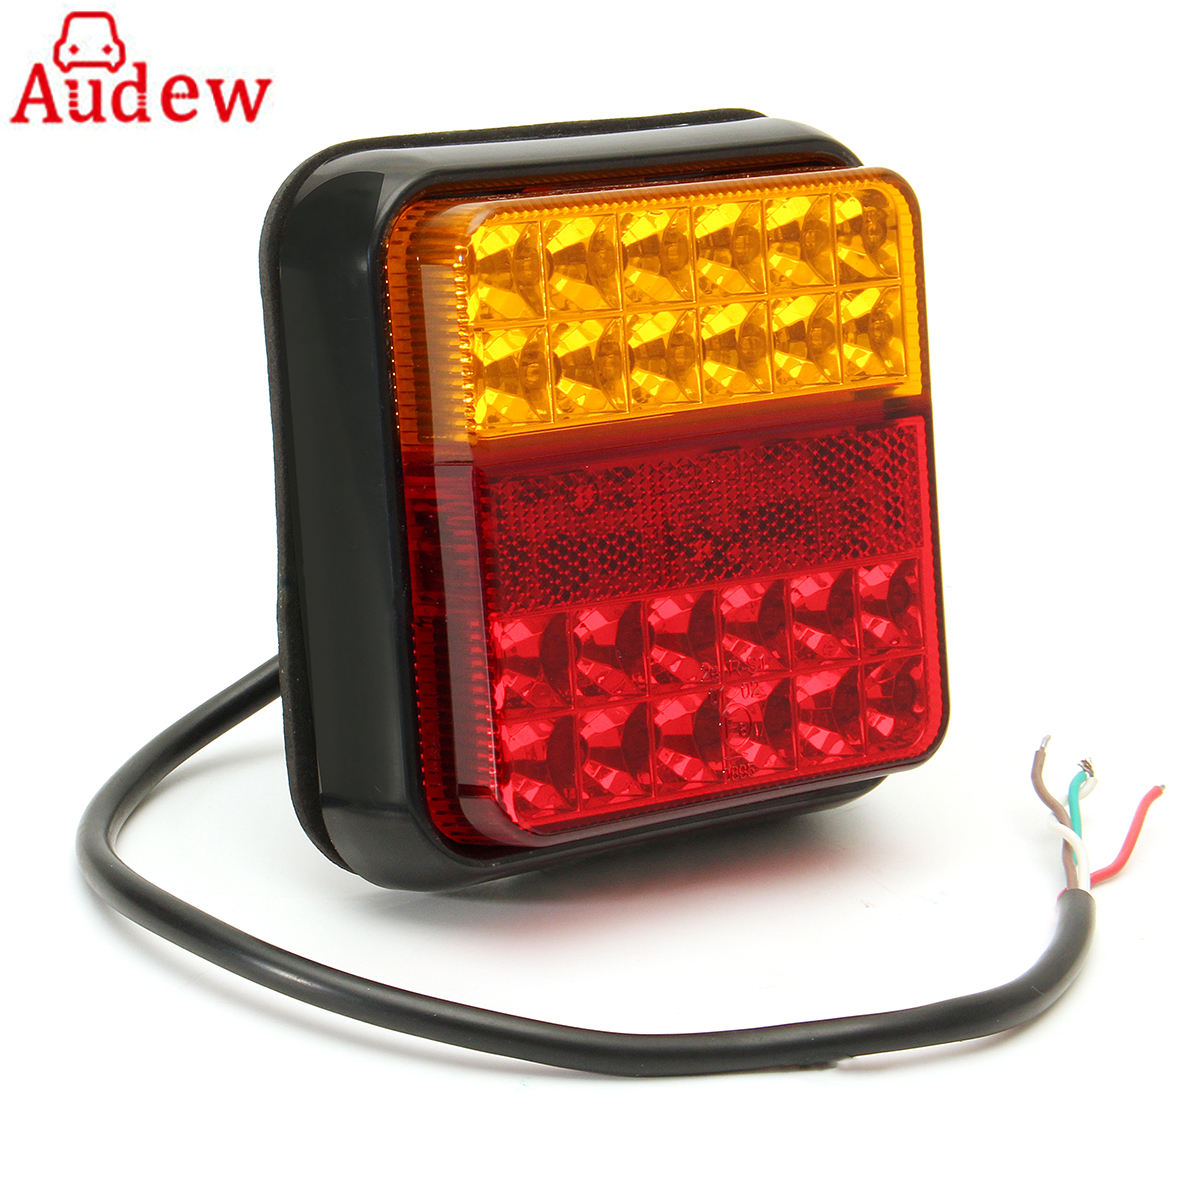 1Pcs 24LED Waterproof Car LED Tail Light Rear Lamps  for Boat Trailer 12V Rear Parts For Trailer Truck Car Lighting 2pcs lot red led light 25 31mm spst 6pin on off g128 boat rocker switch 16a 250v 20a 125v car dash dashboard truck rv atv home